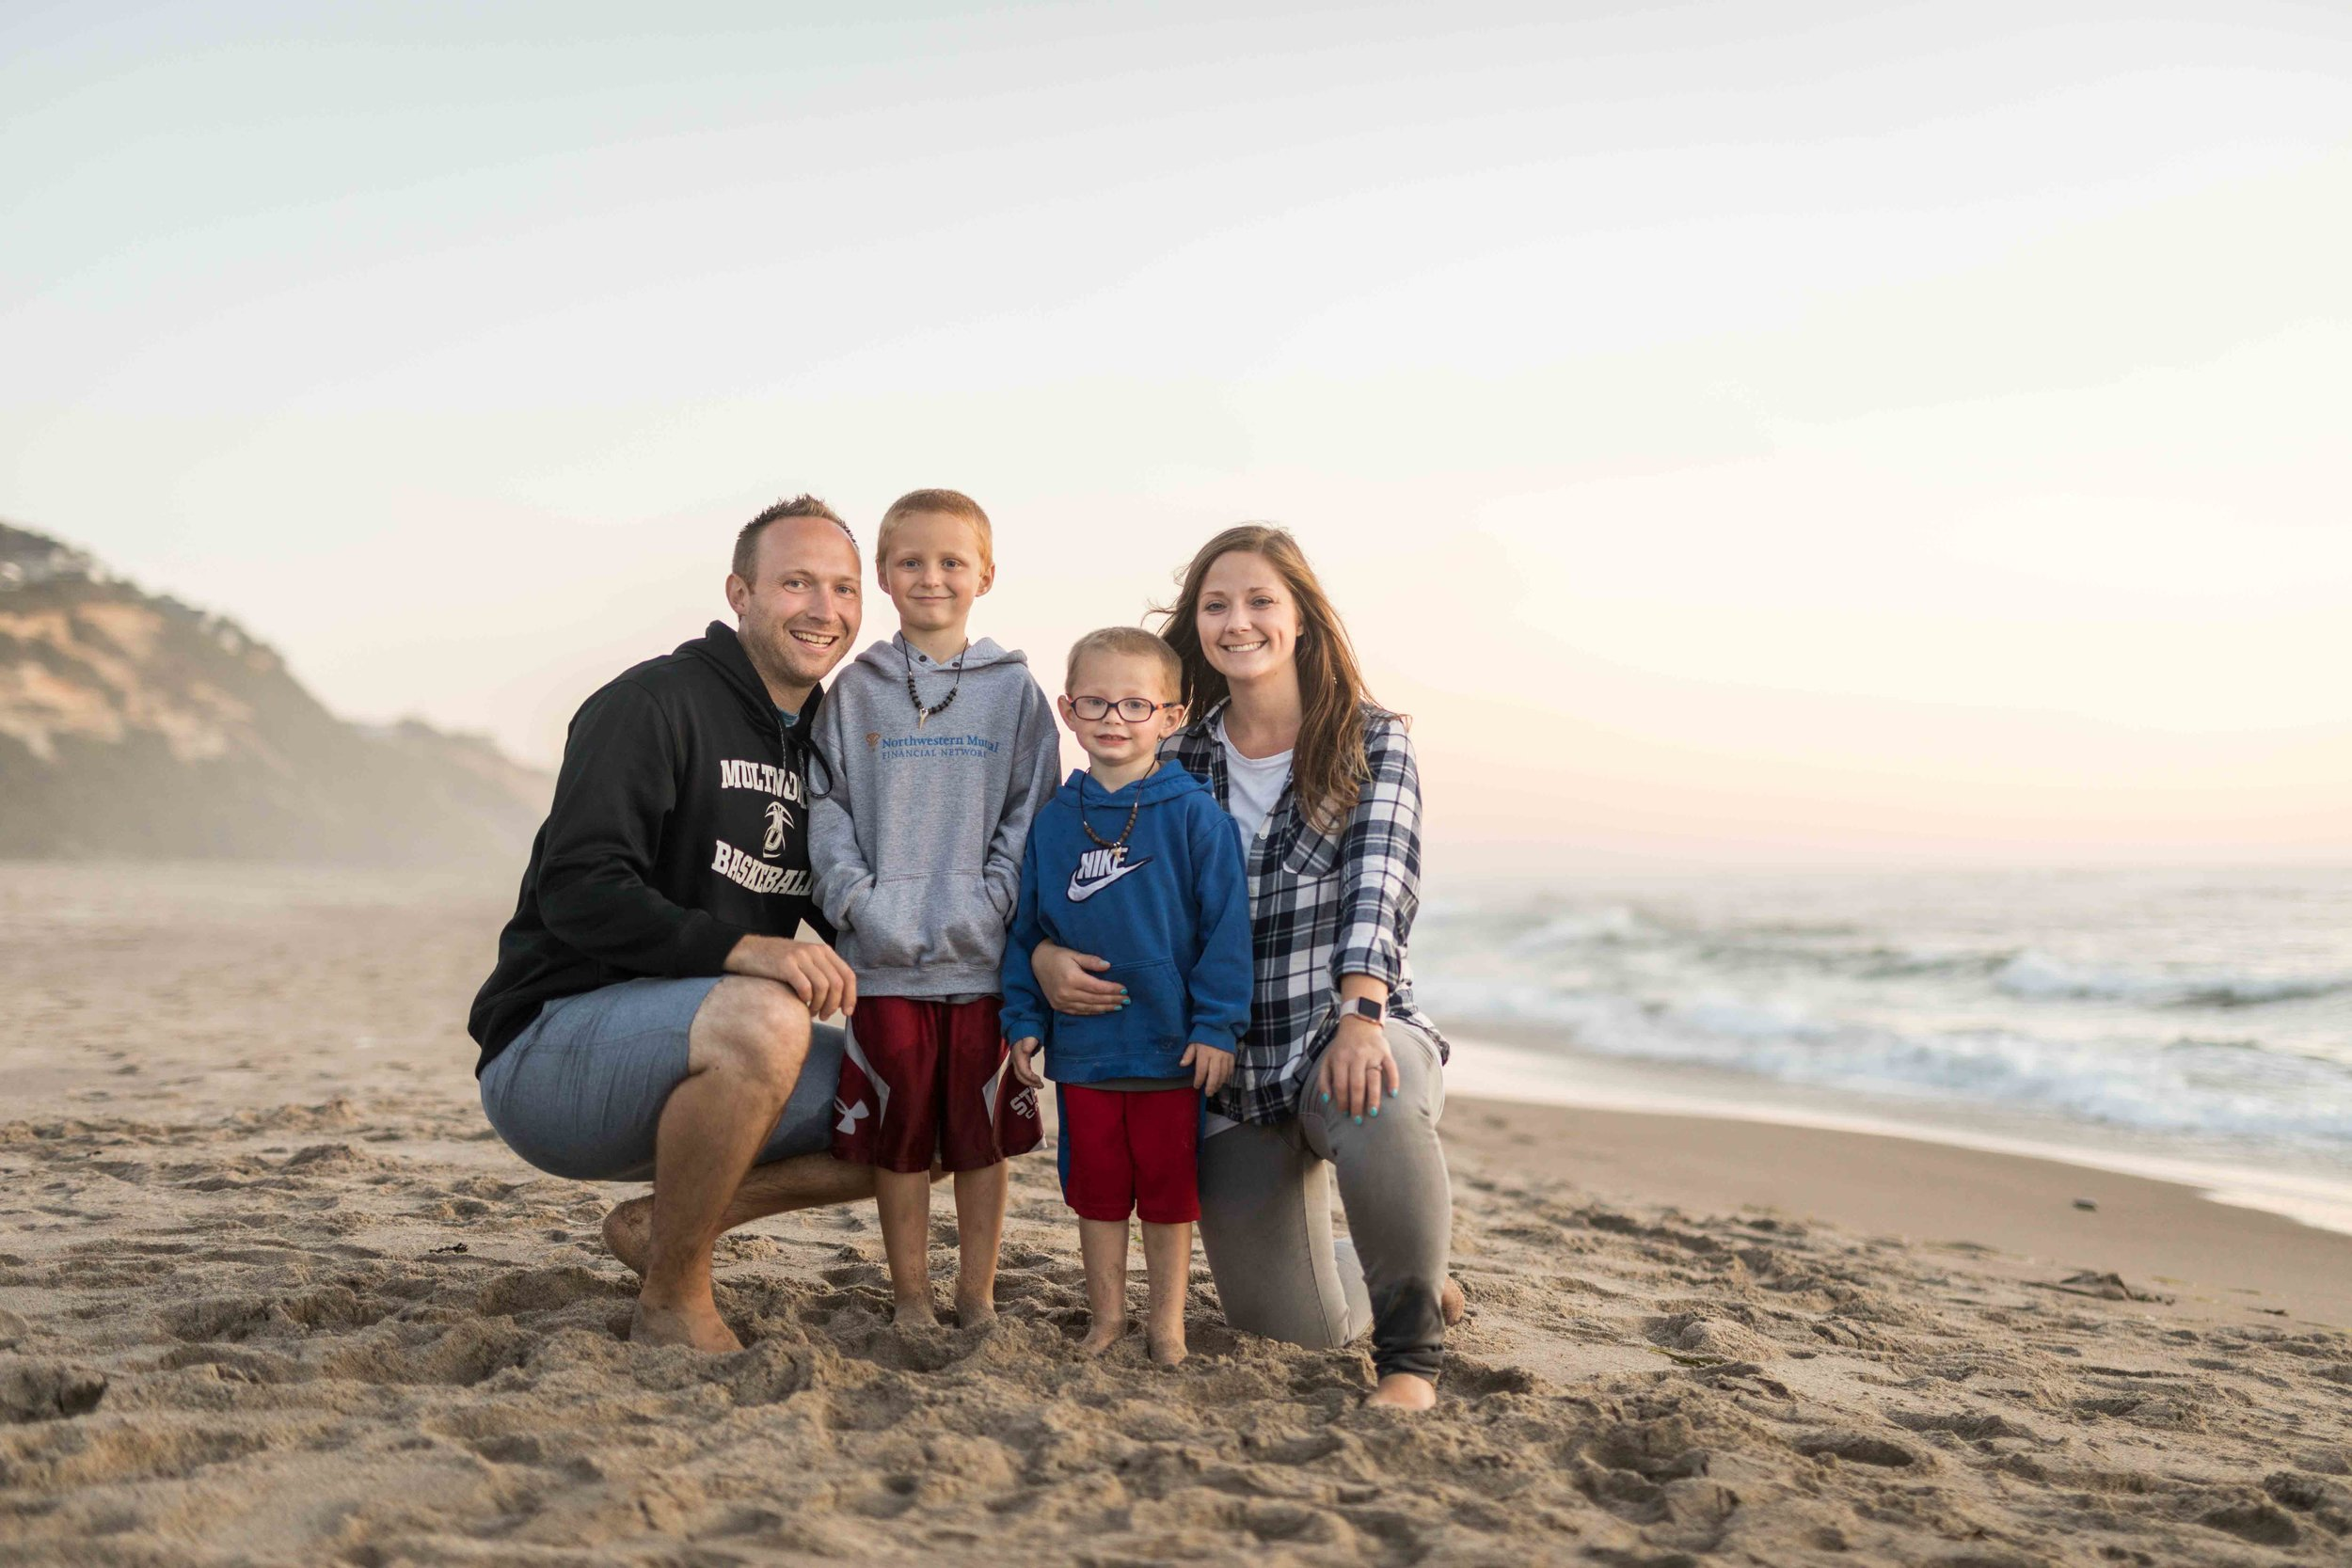 The Looyenga Family on the Oregon Coast in 2018